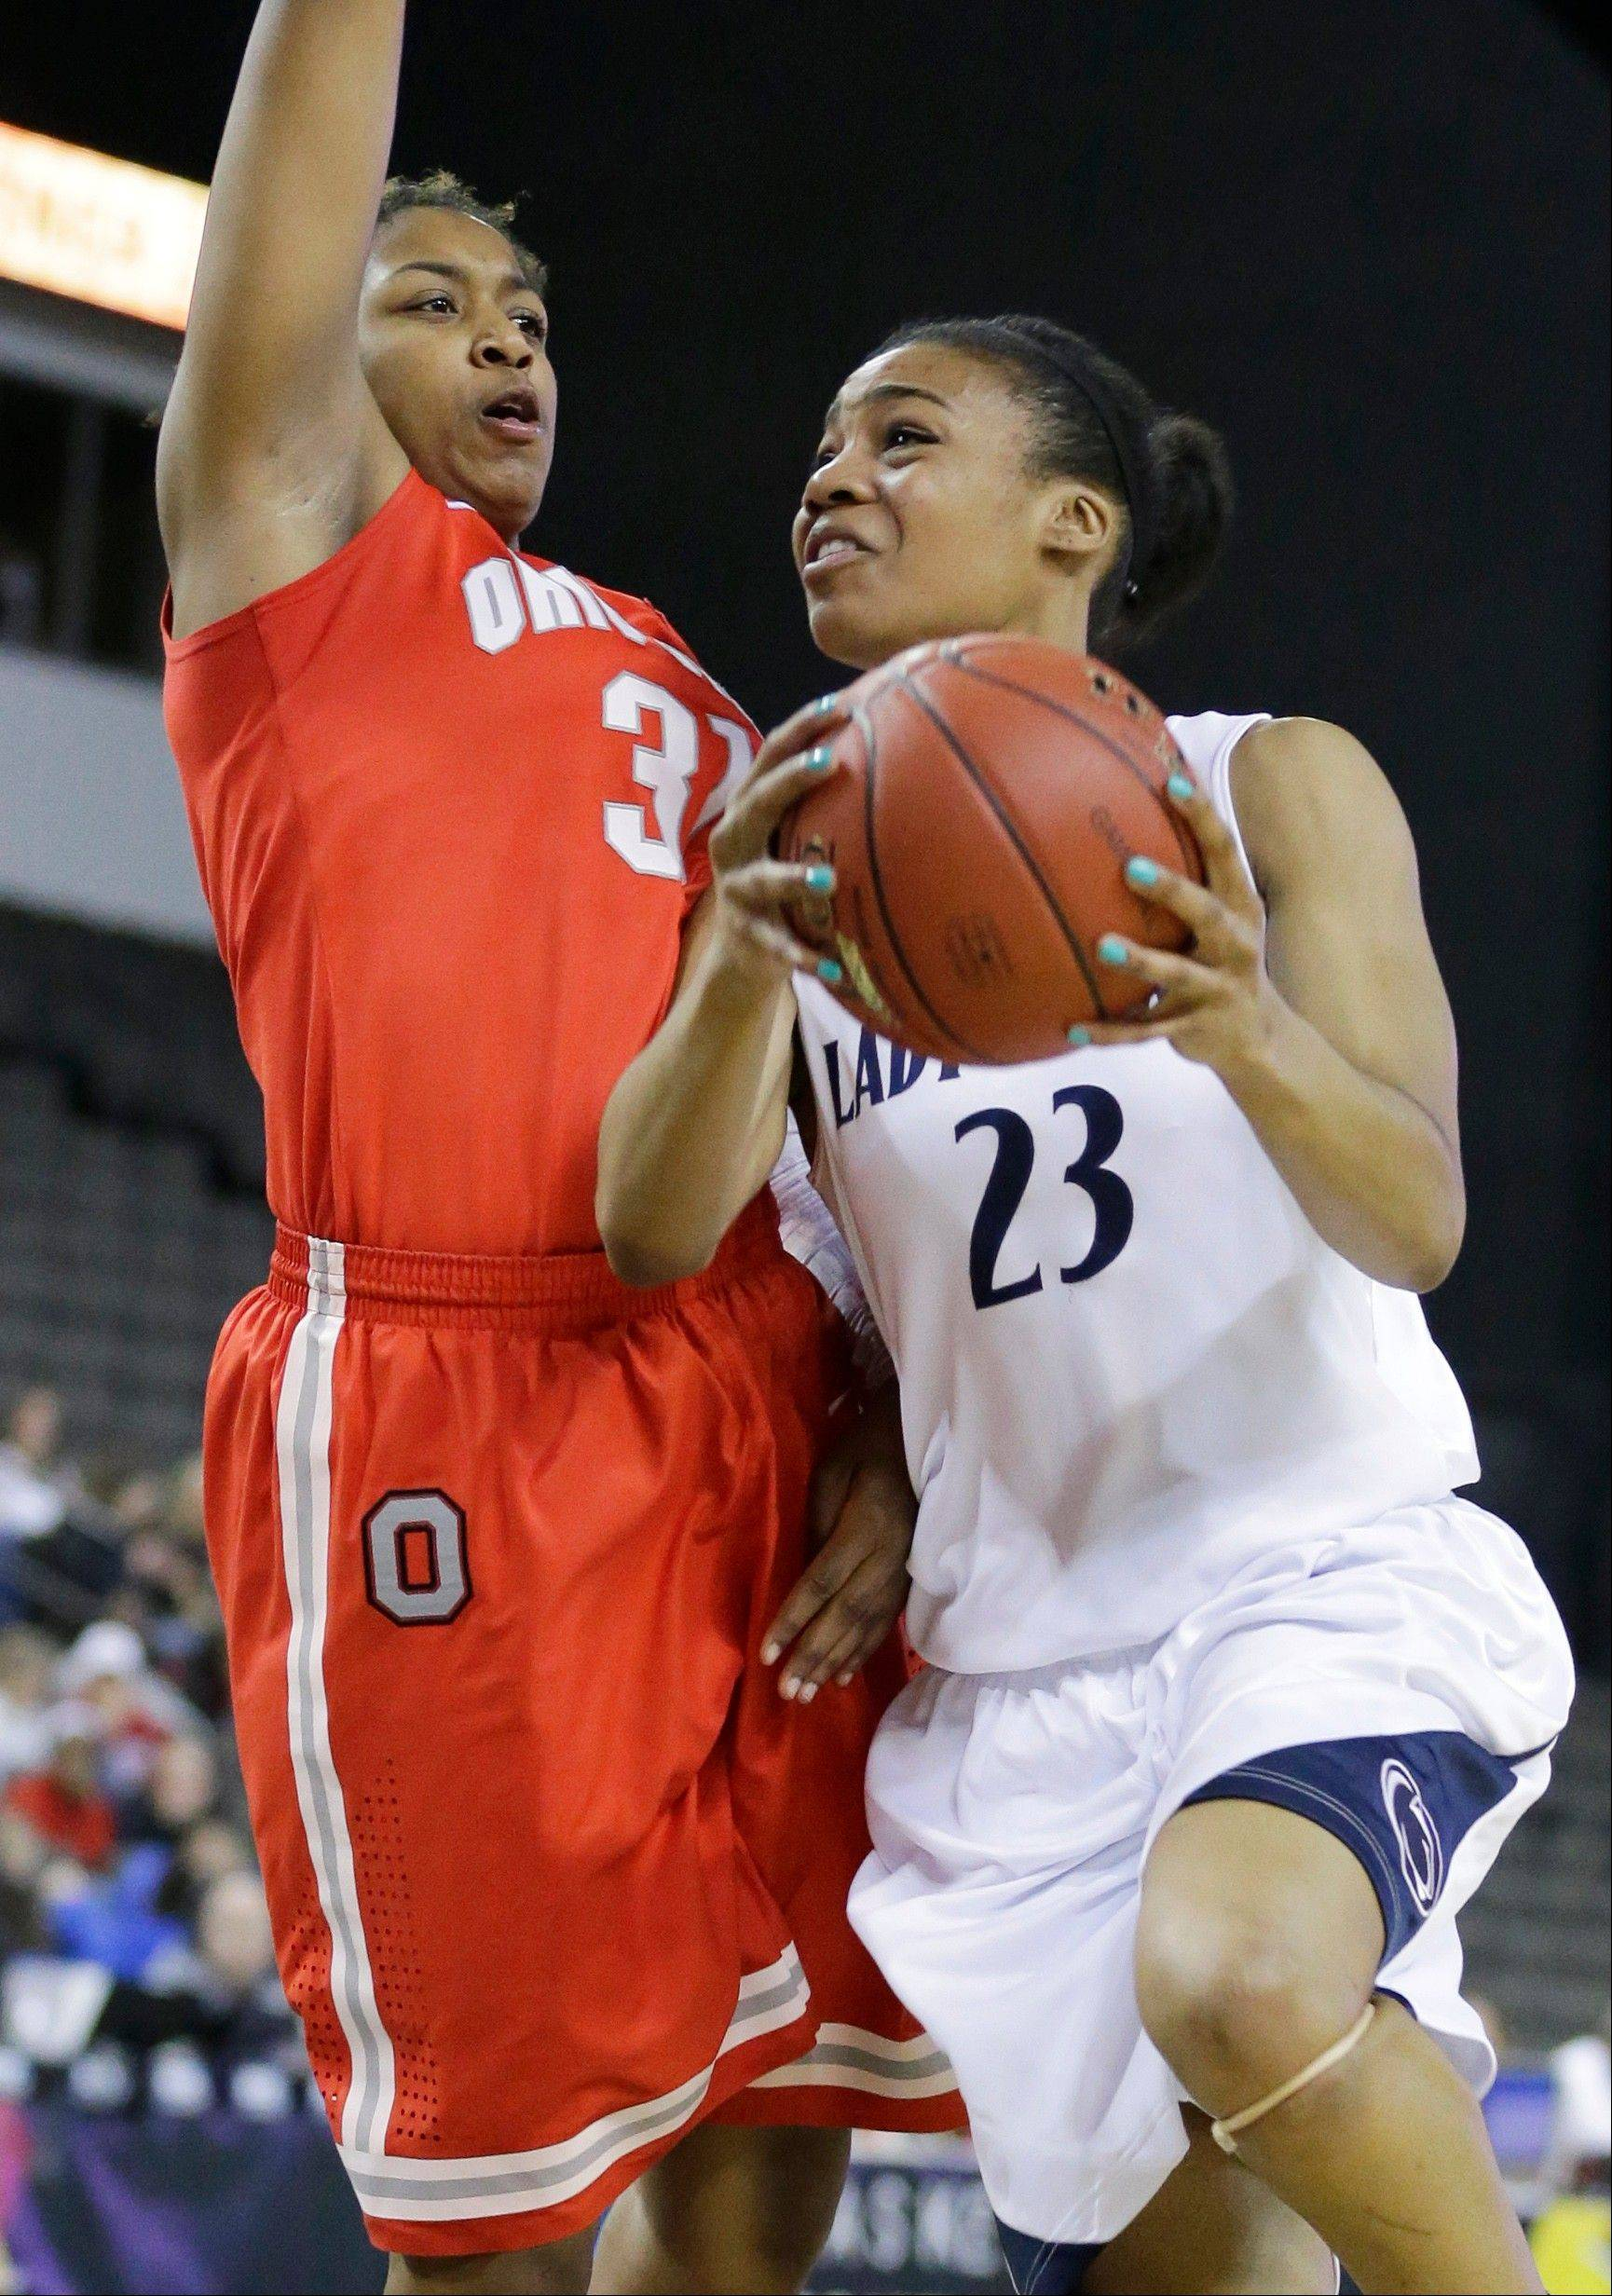 Penn State forward Ariel Edwards, right, drives to the basket against Ohio State guard Raven Ferguson during the second half of an NCAA women's college basketball game in the Big Ten Conference tournament in Hoffman Estates, Ill., on Friday, March 8, 2013. Penn State won 76-66. (AP Photo/Nam Y. Huh)